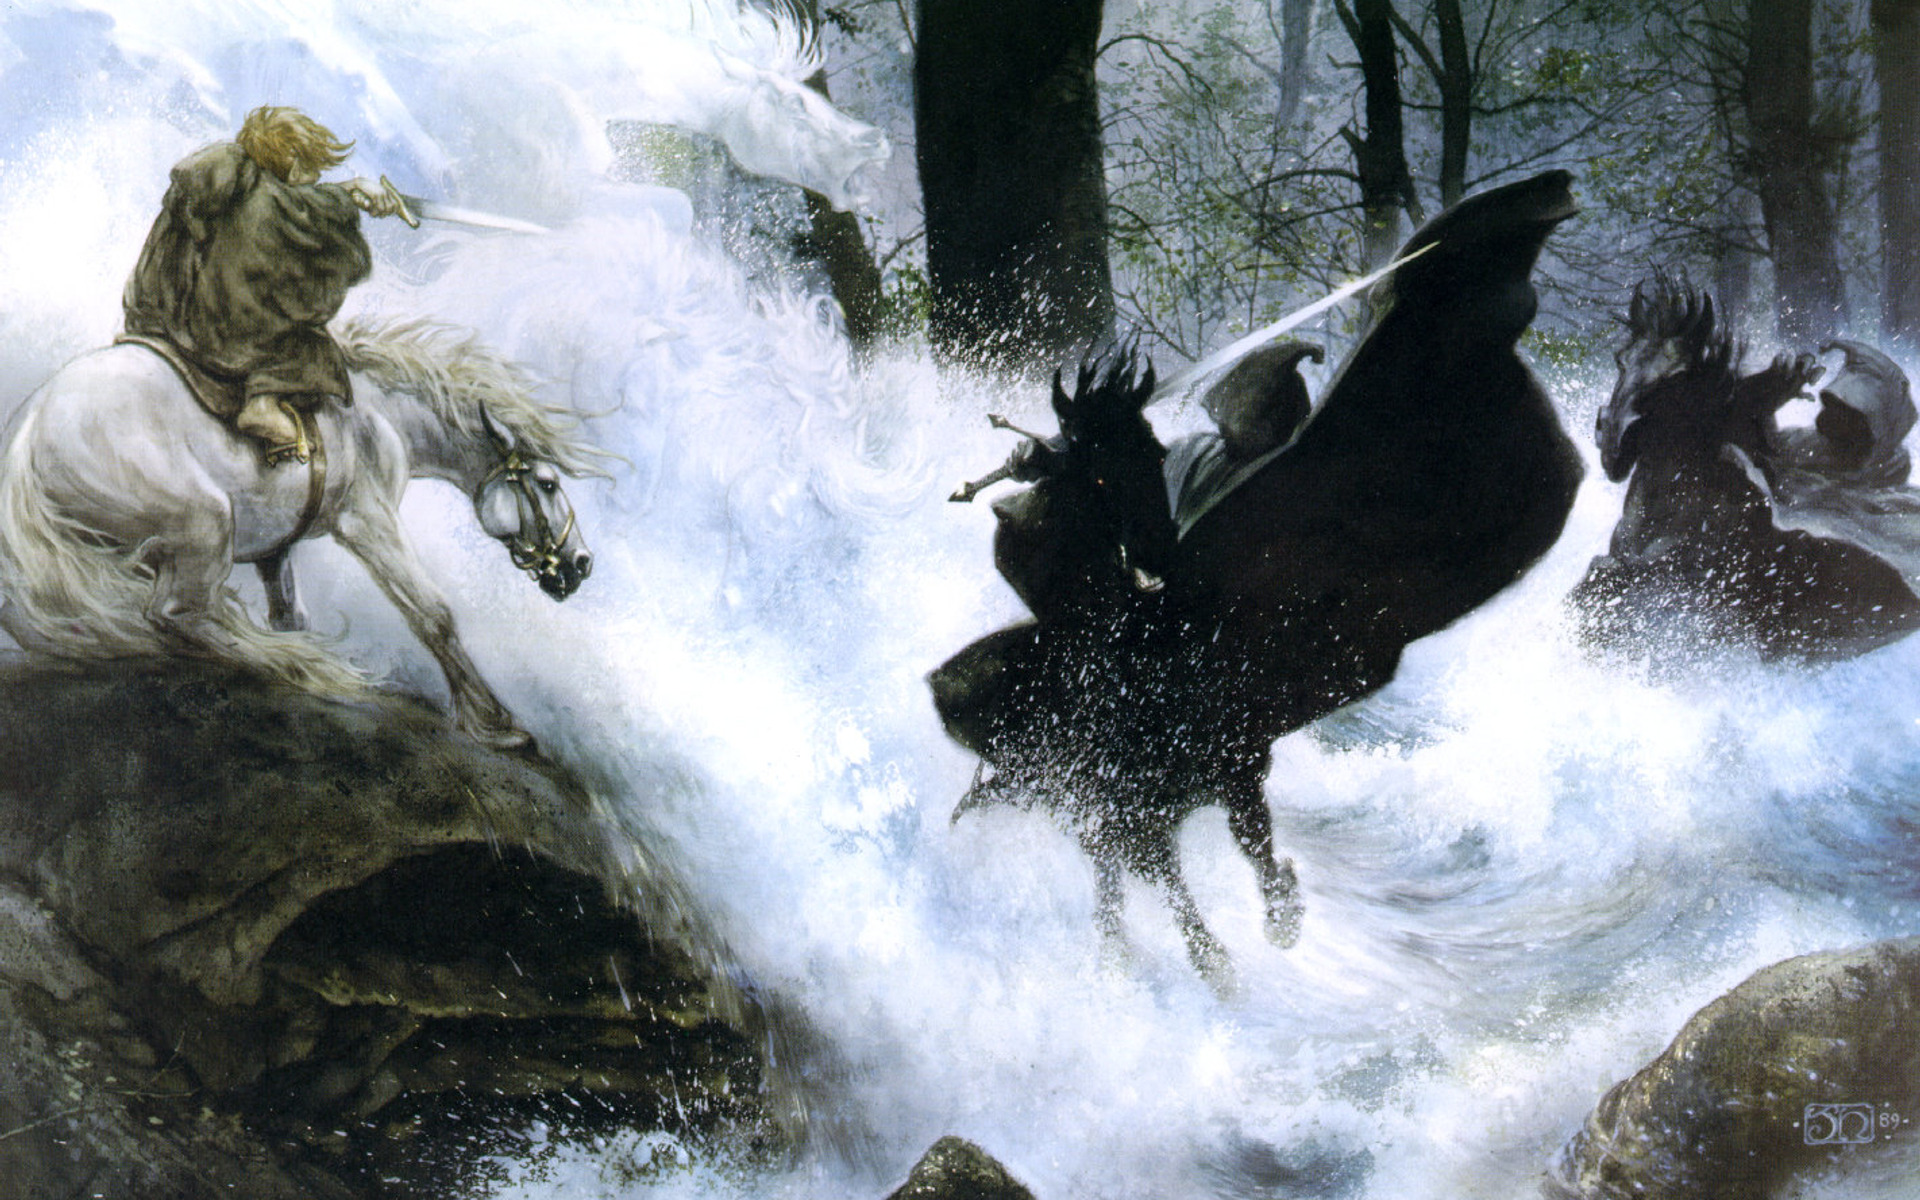 The Lord Of The Rings Nazgul The Fellowship Of The Ring Frodo